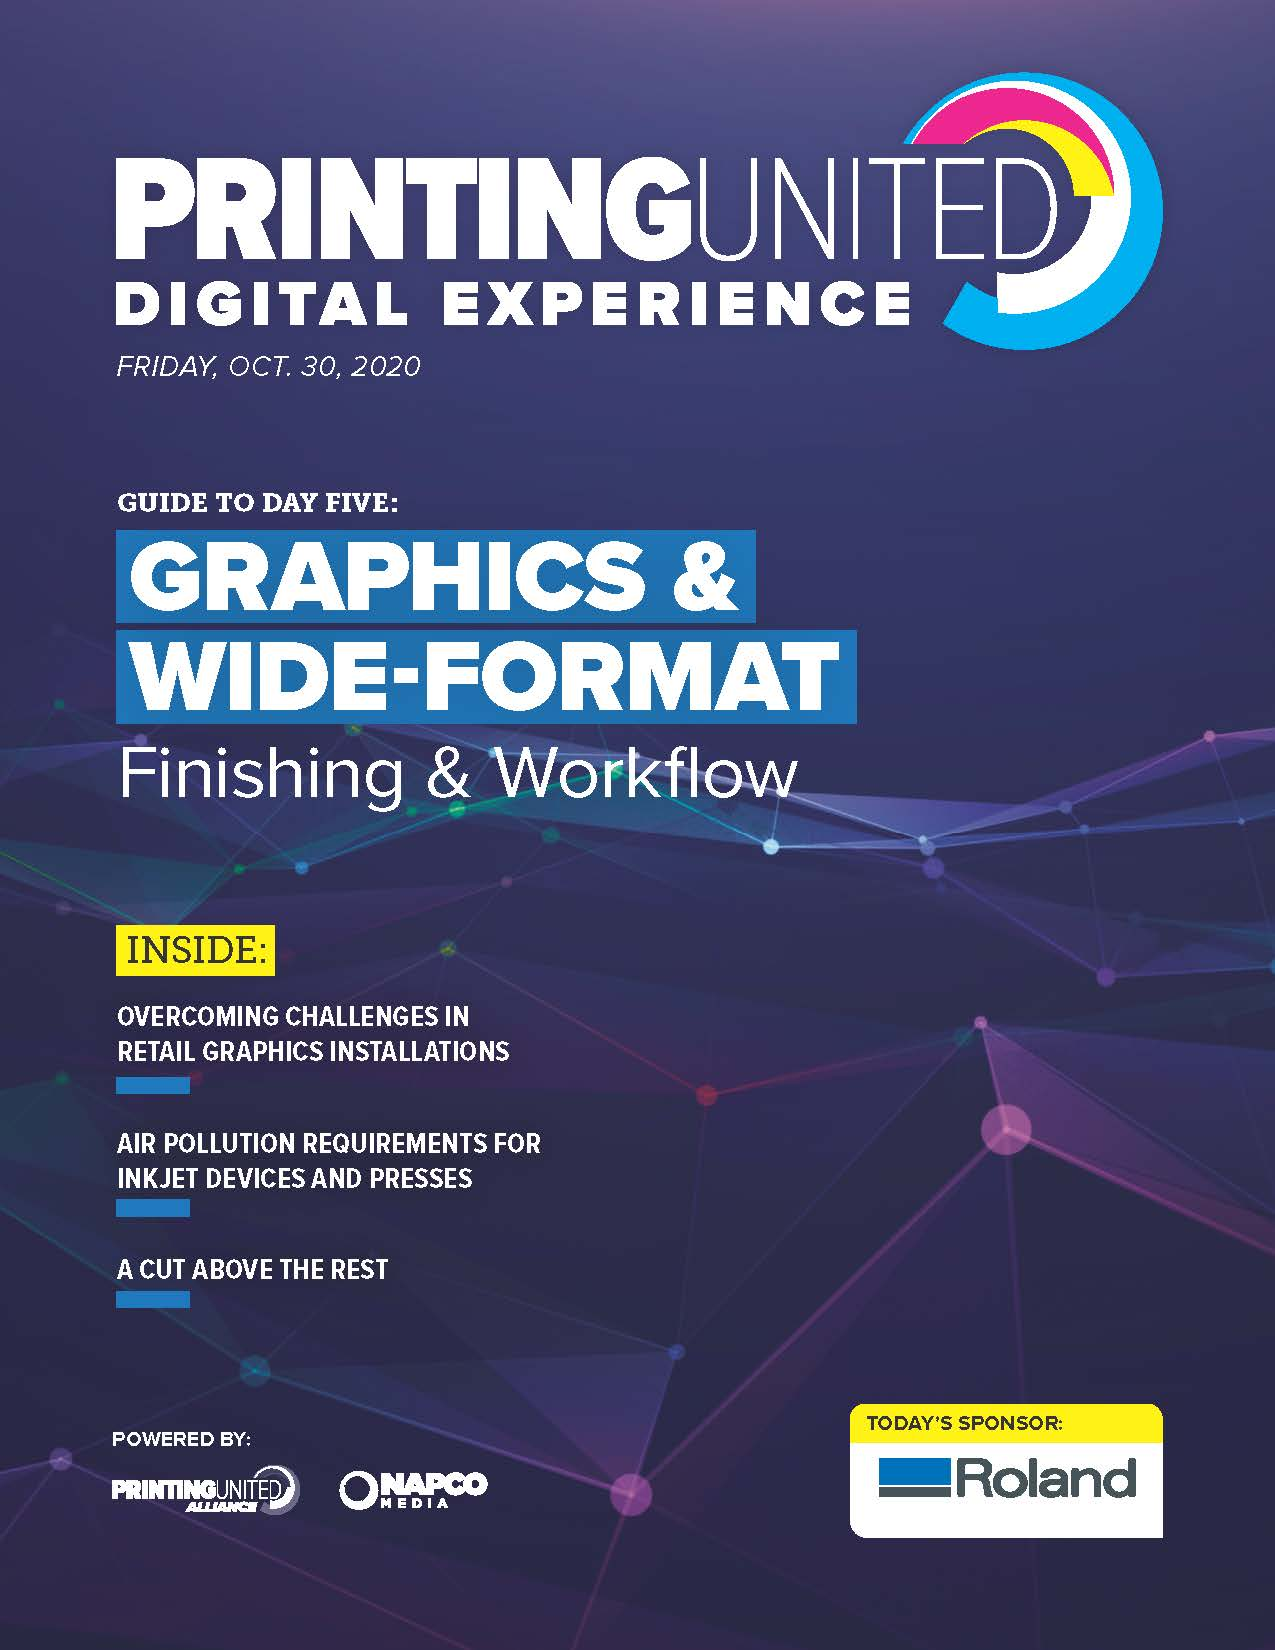 PRINTING United Digital Experience Day 5